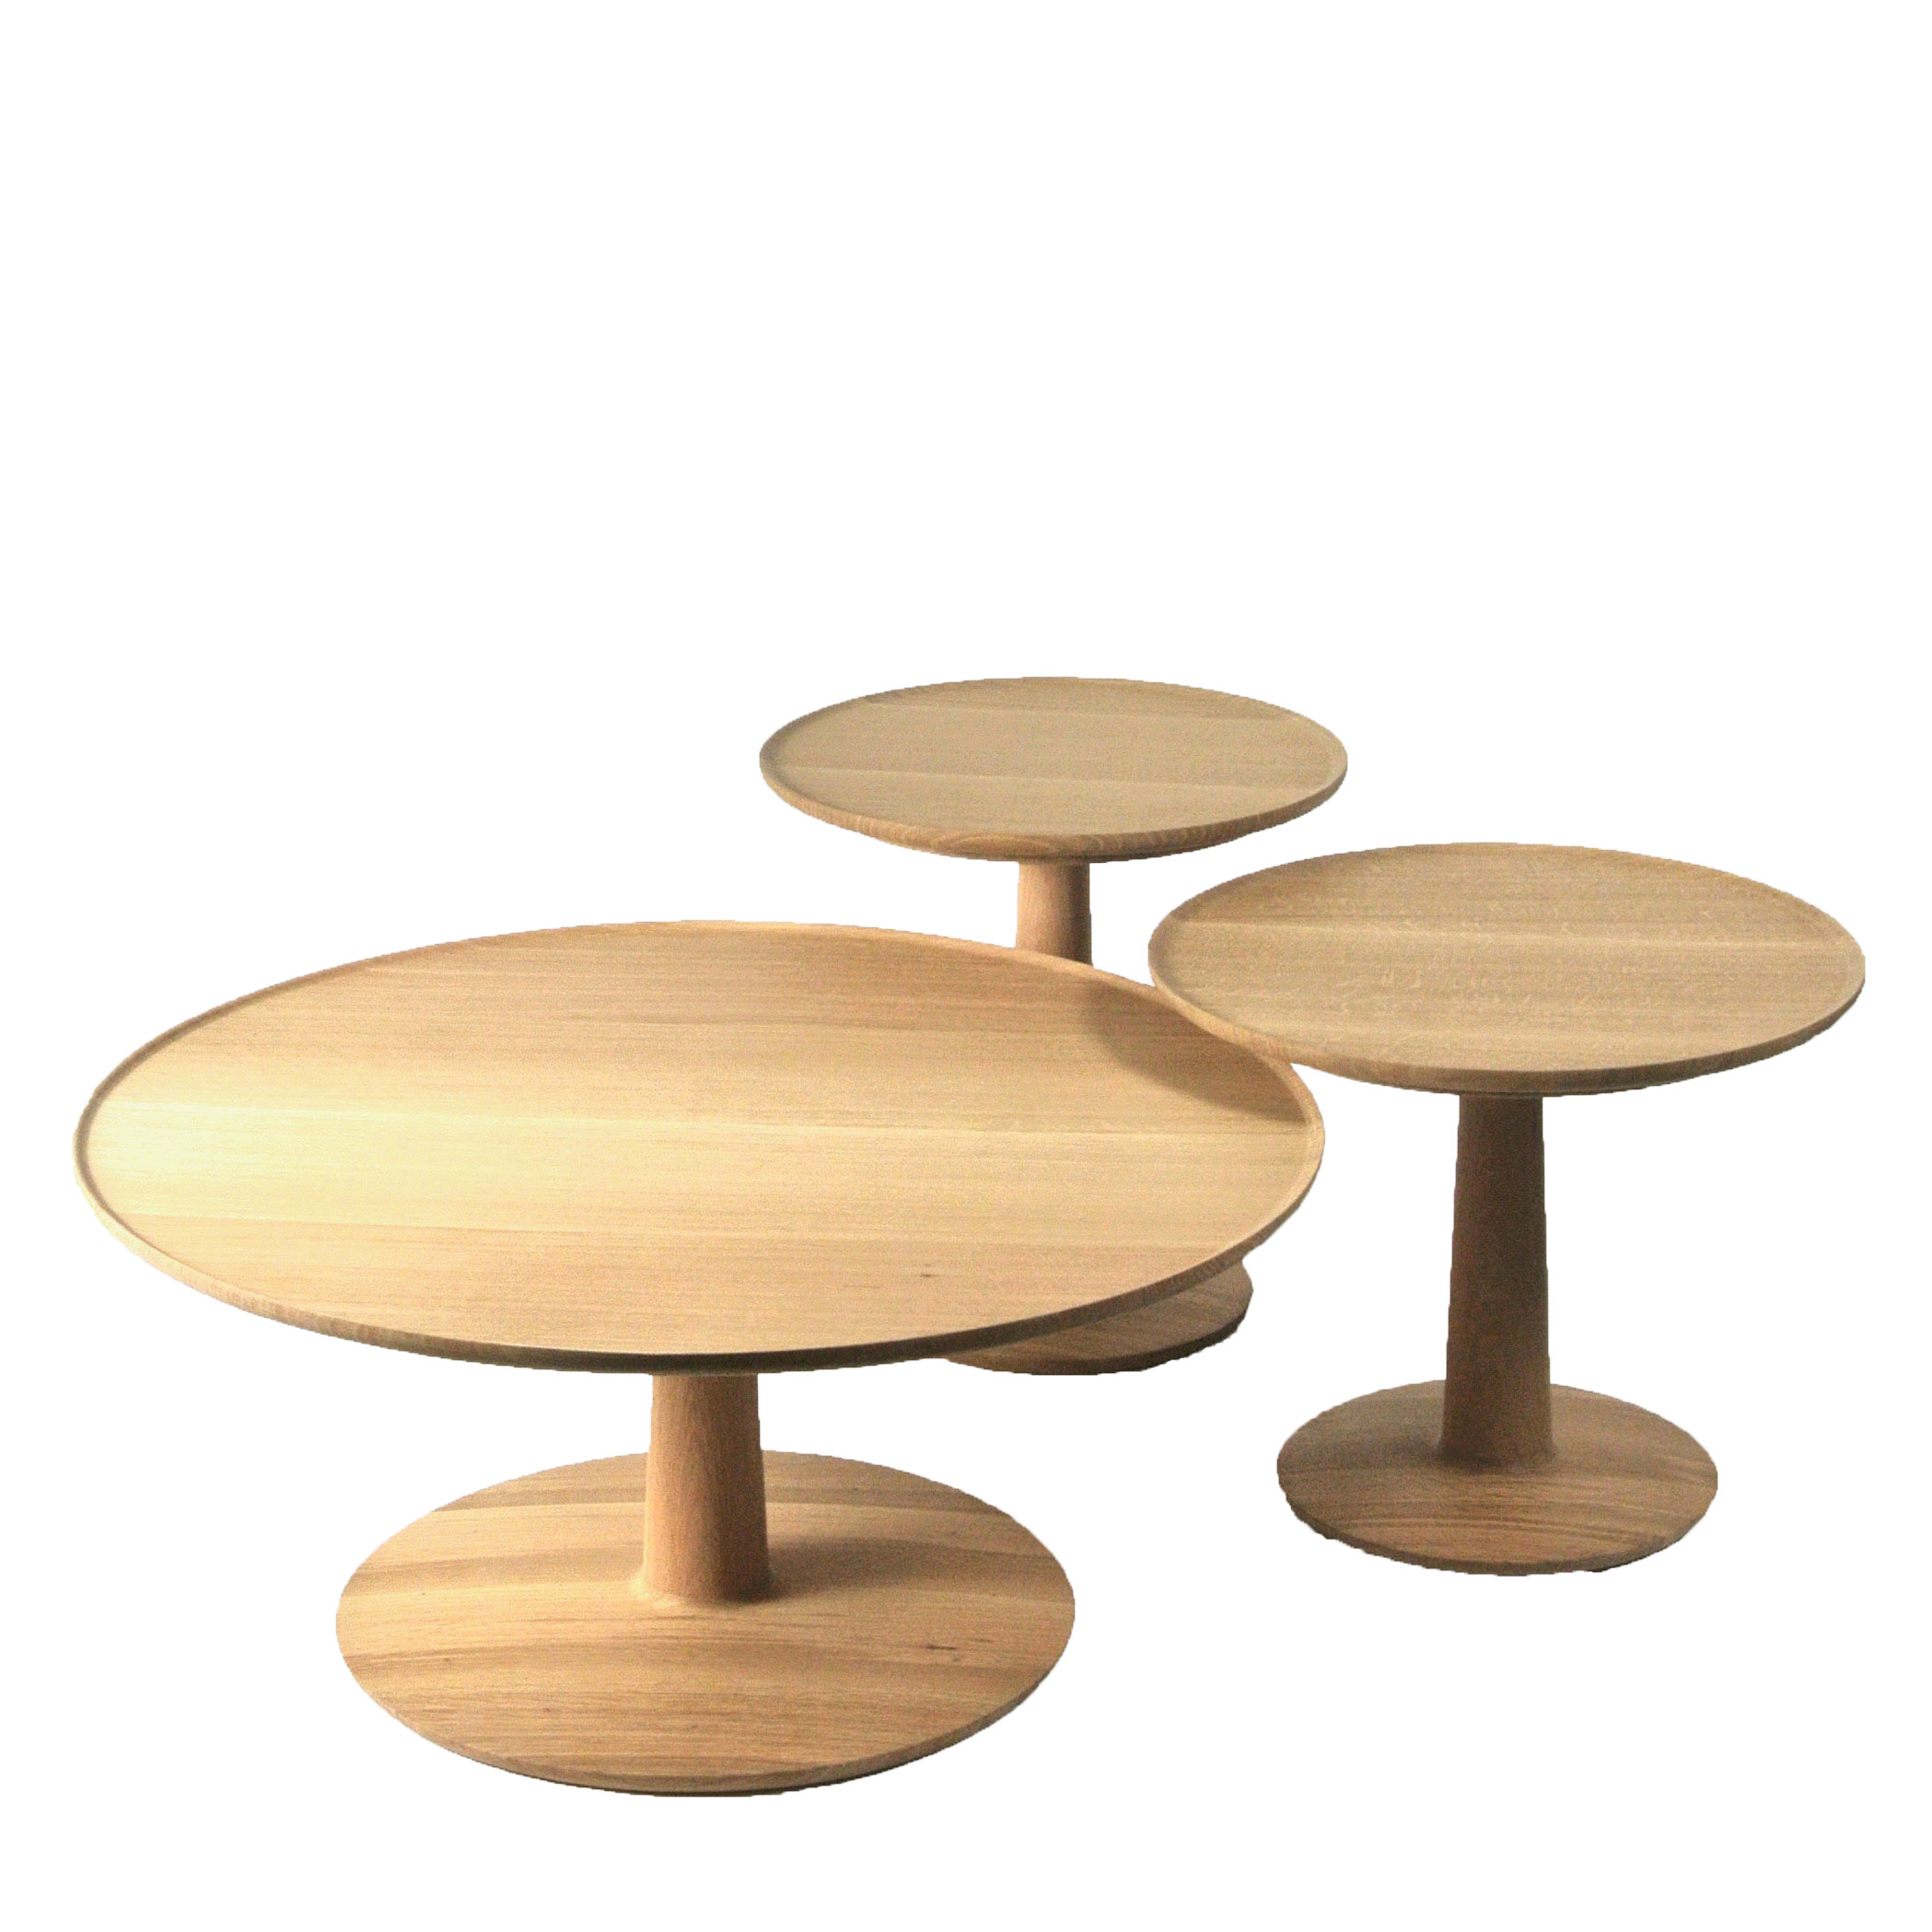 lotus table main image